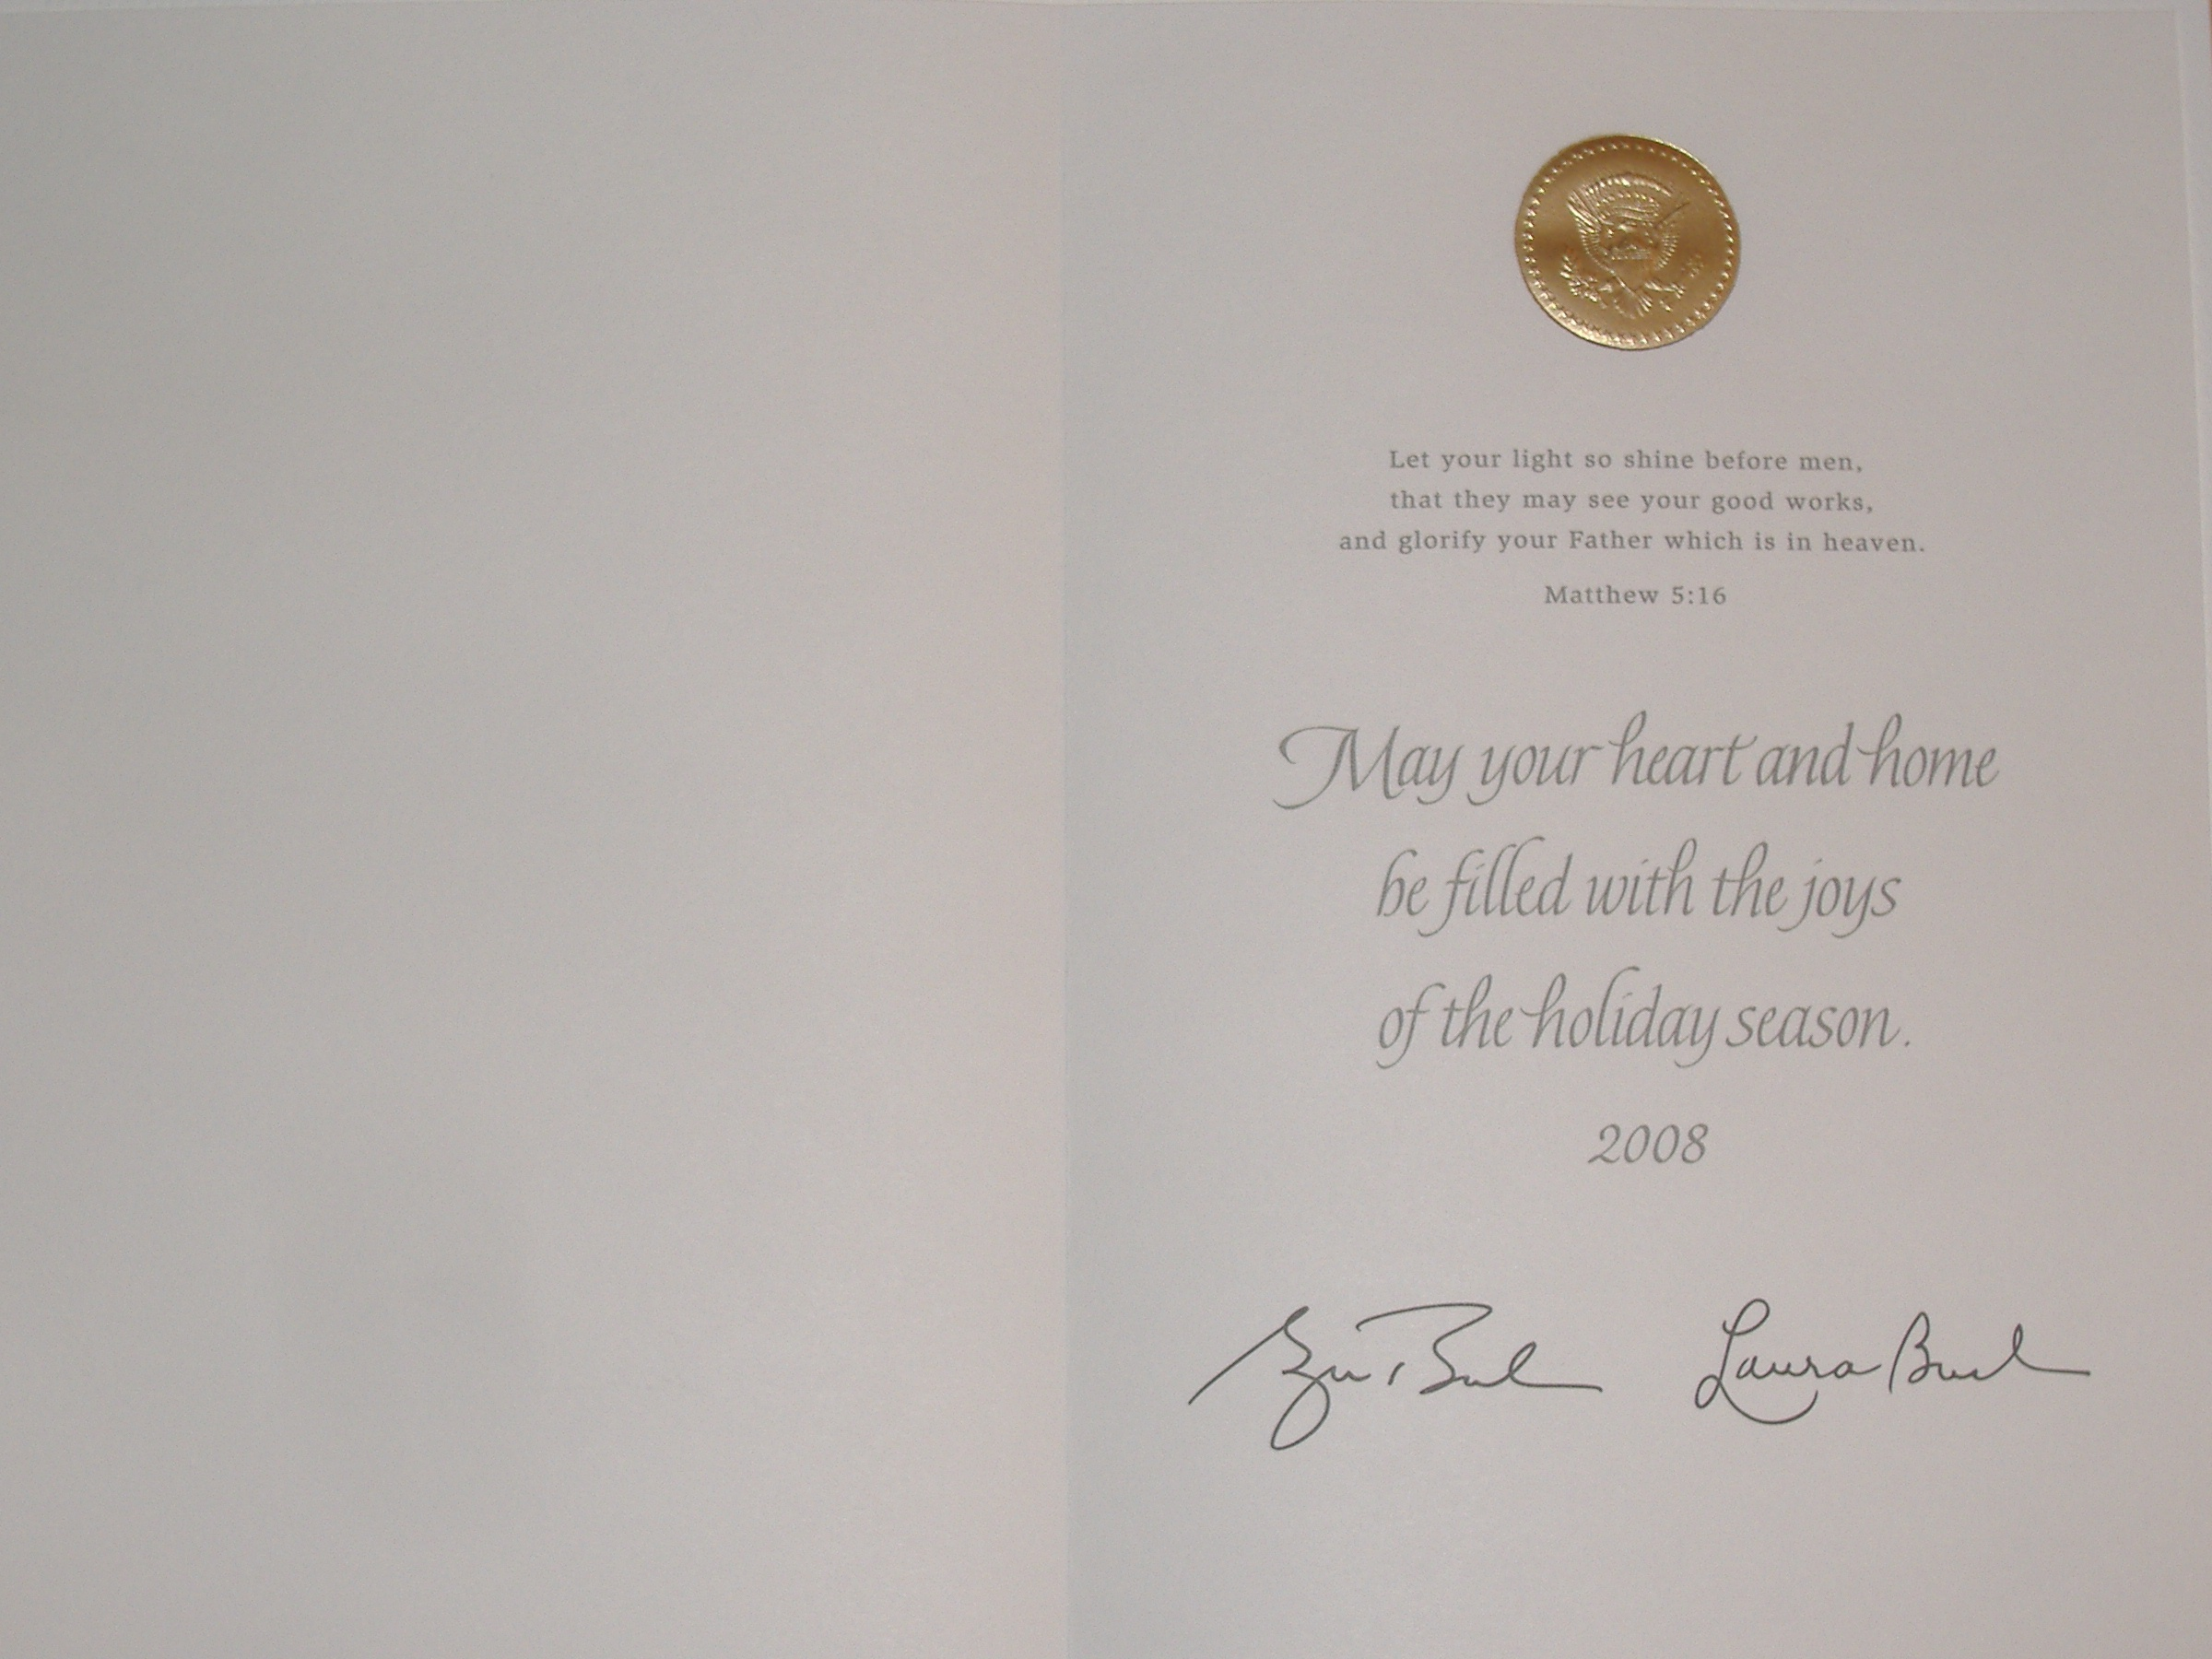 2008 White House Christmas Card : monoblogue